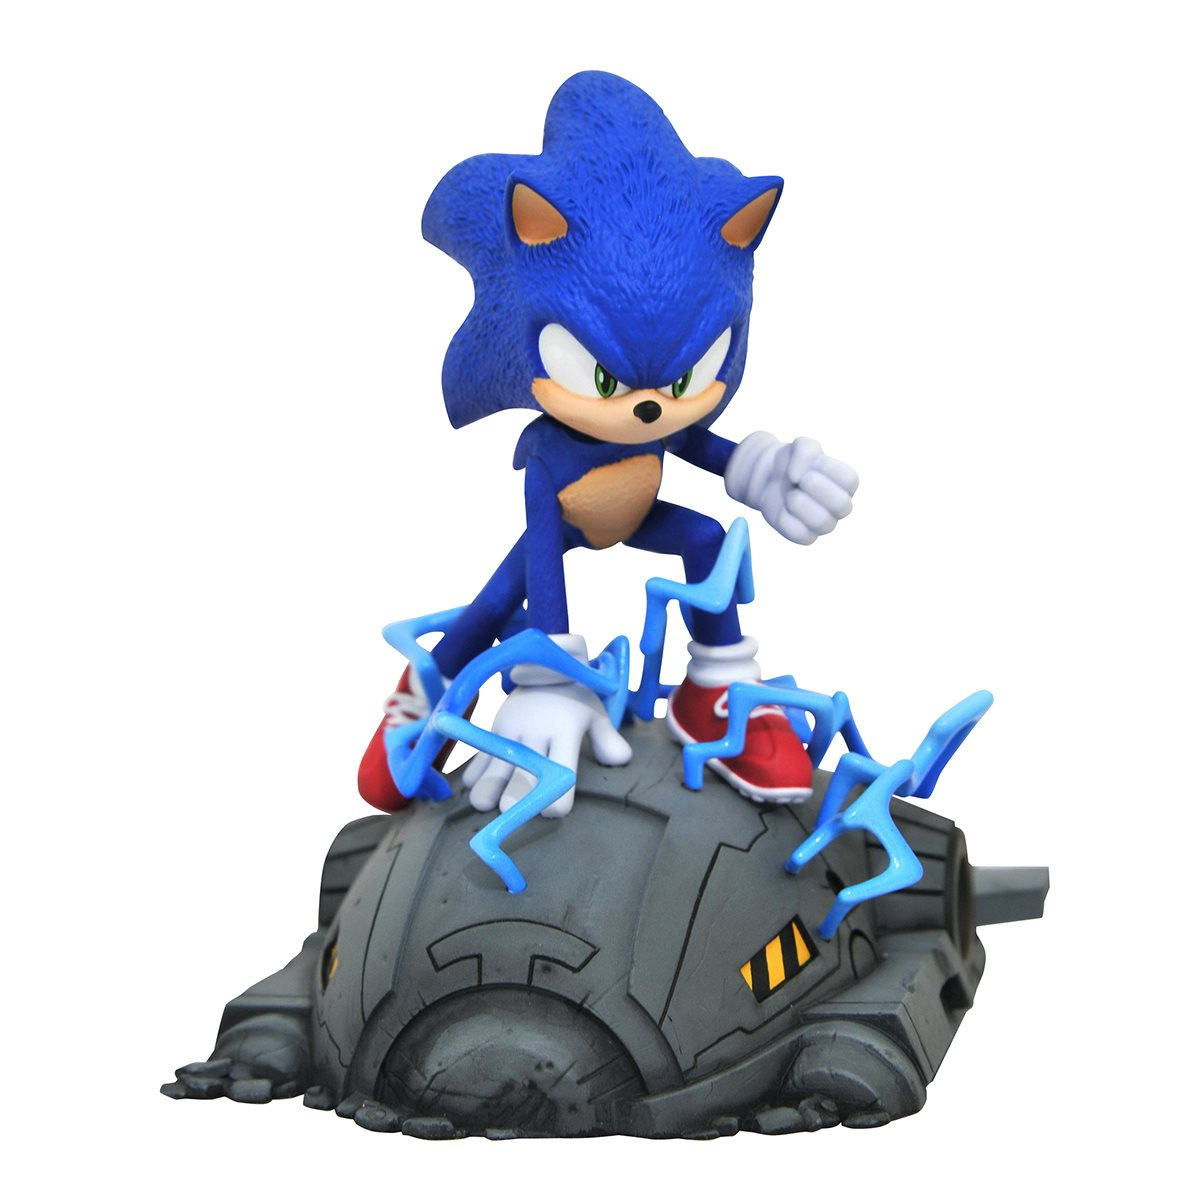 Sonic The Hedgehog Movie Sonic 1 6 Scale Statue Entertainment Earth